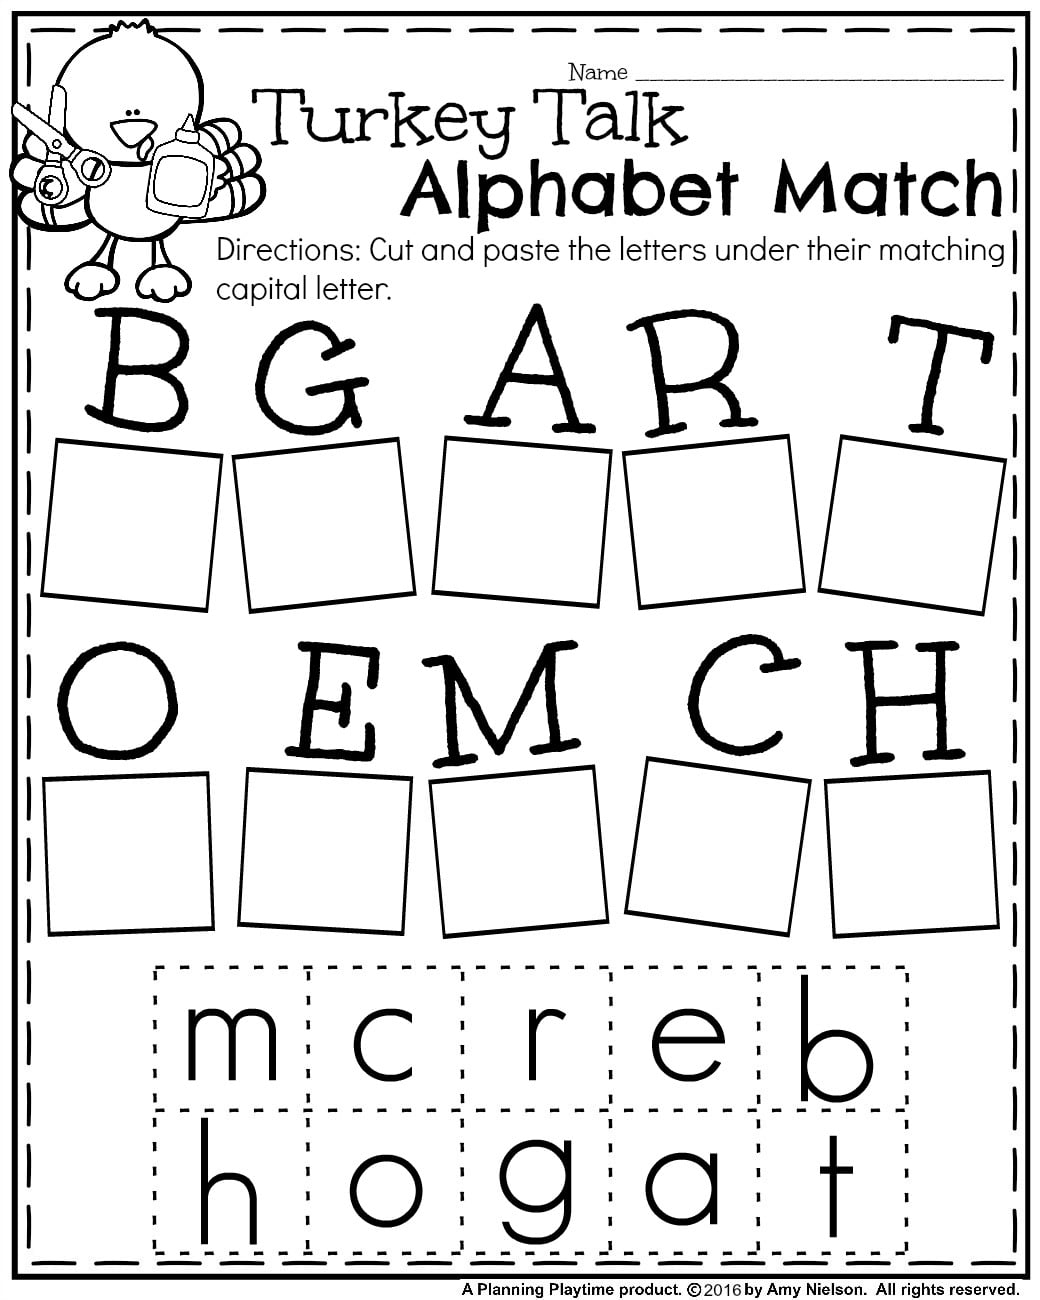 Worksheets Free Kindergarten Worksheets fall kindergarten worksheets for november planning playtime free worksheet turkey alphabet match